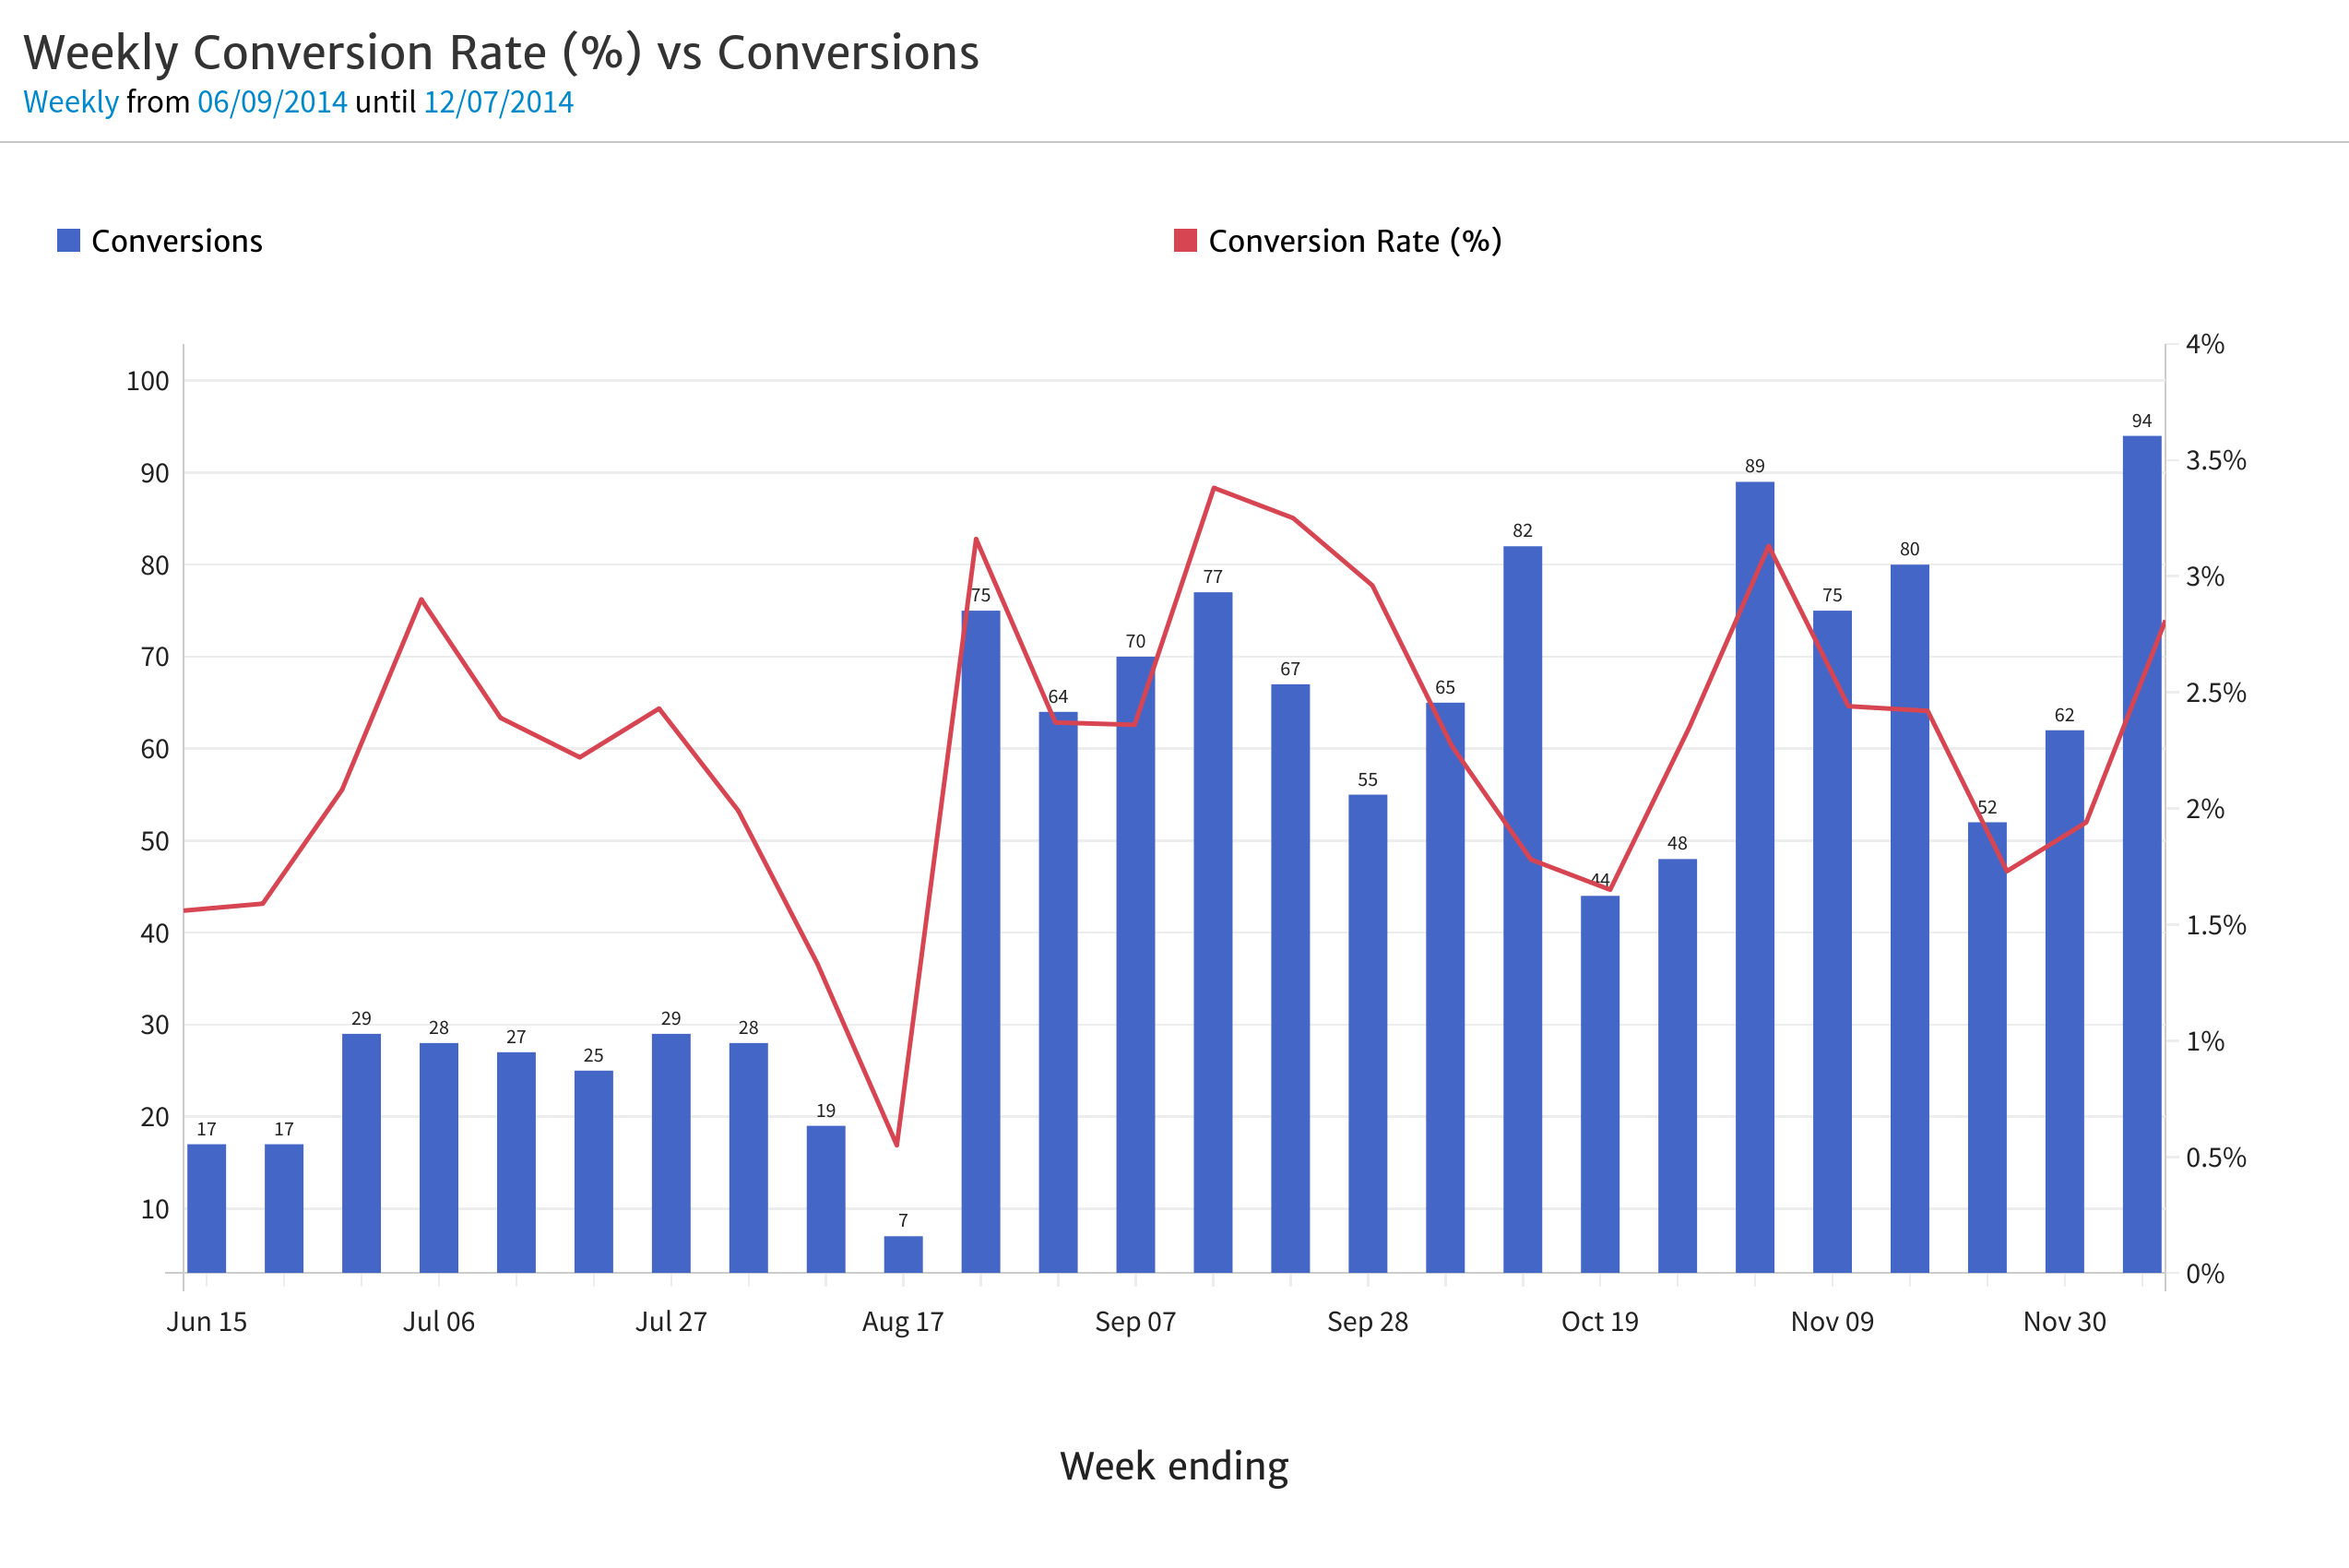 Megalytic Chart with Conversion Rate and Completions Together